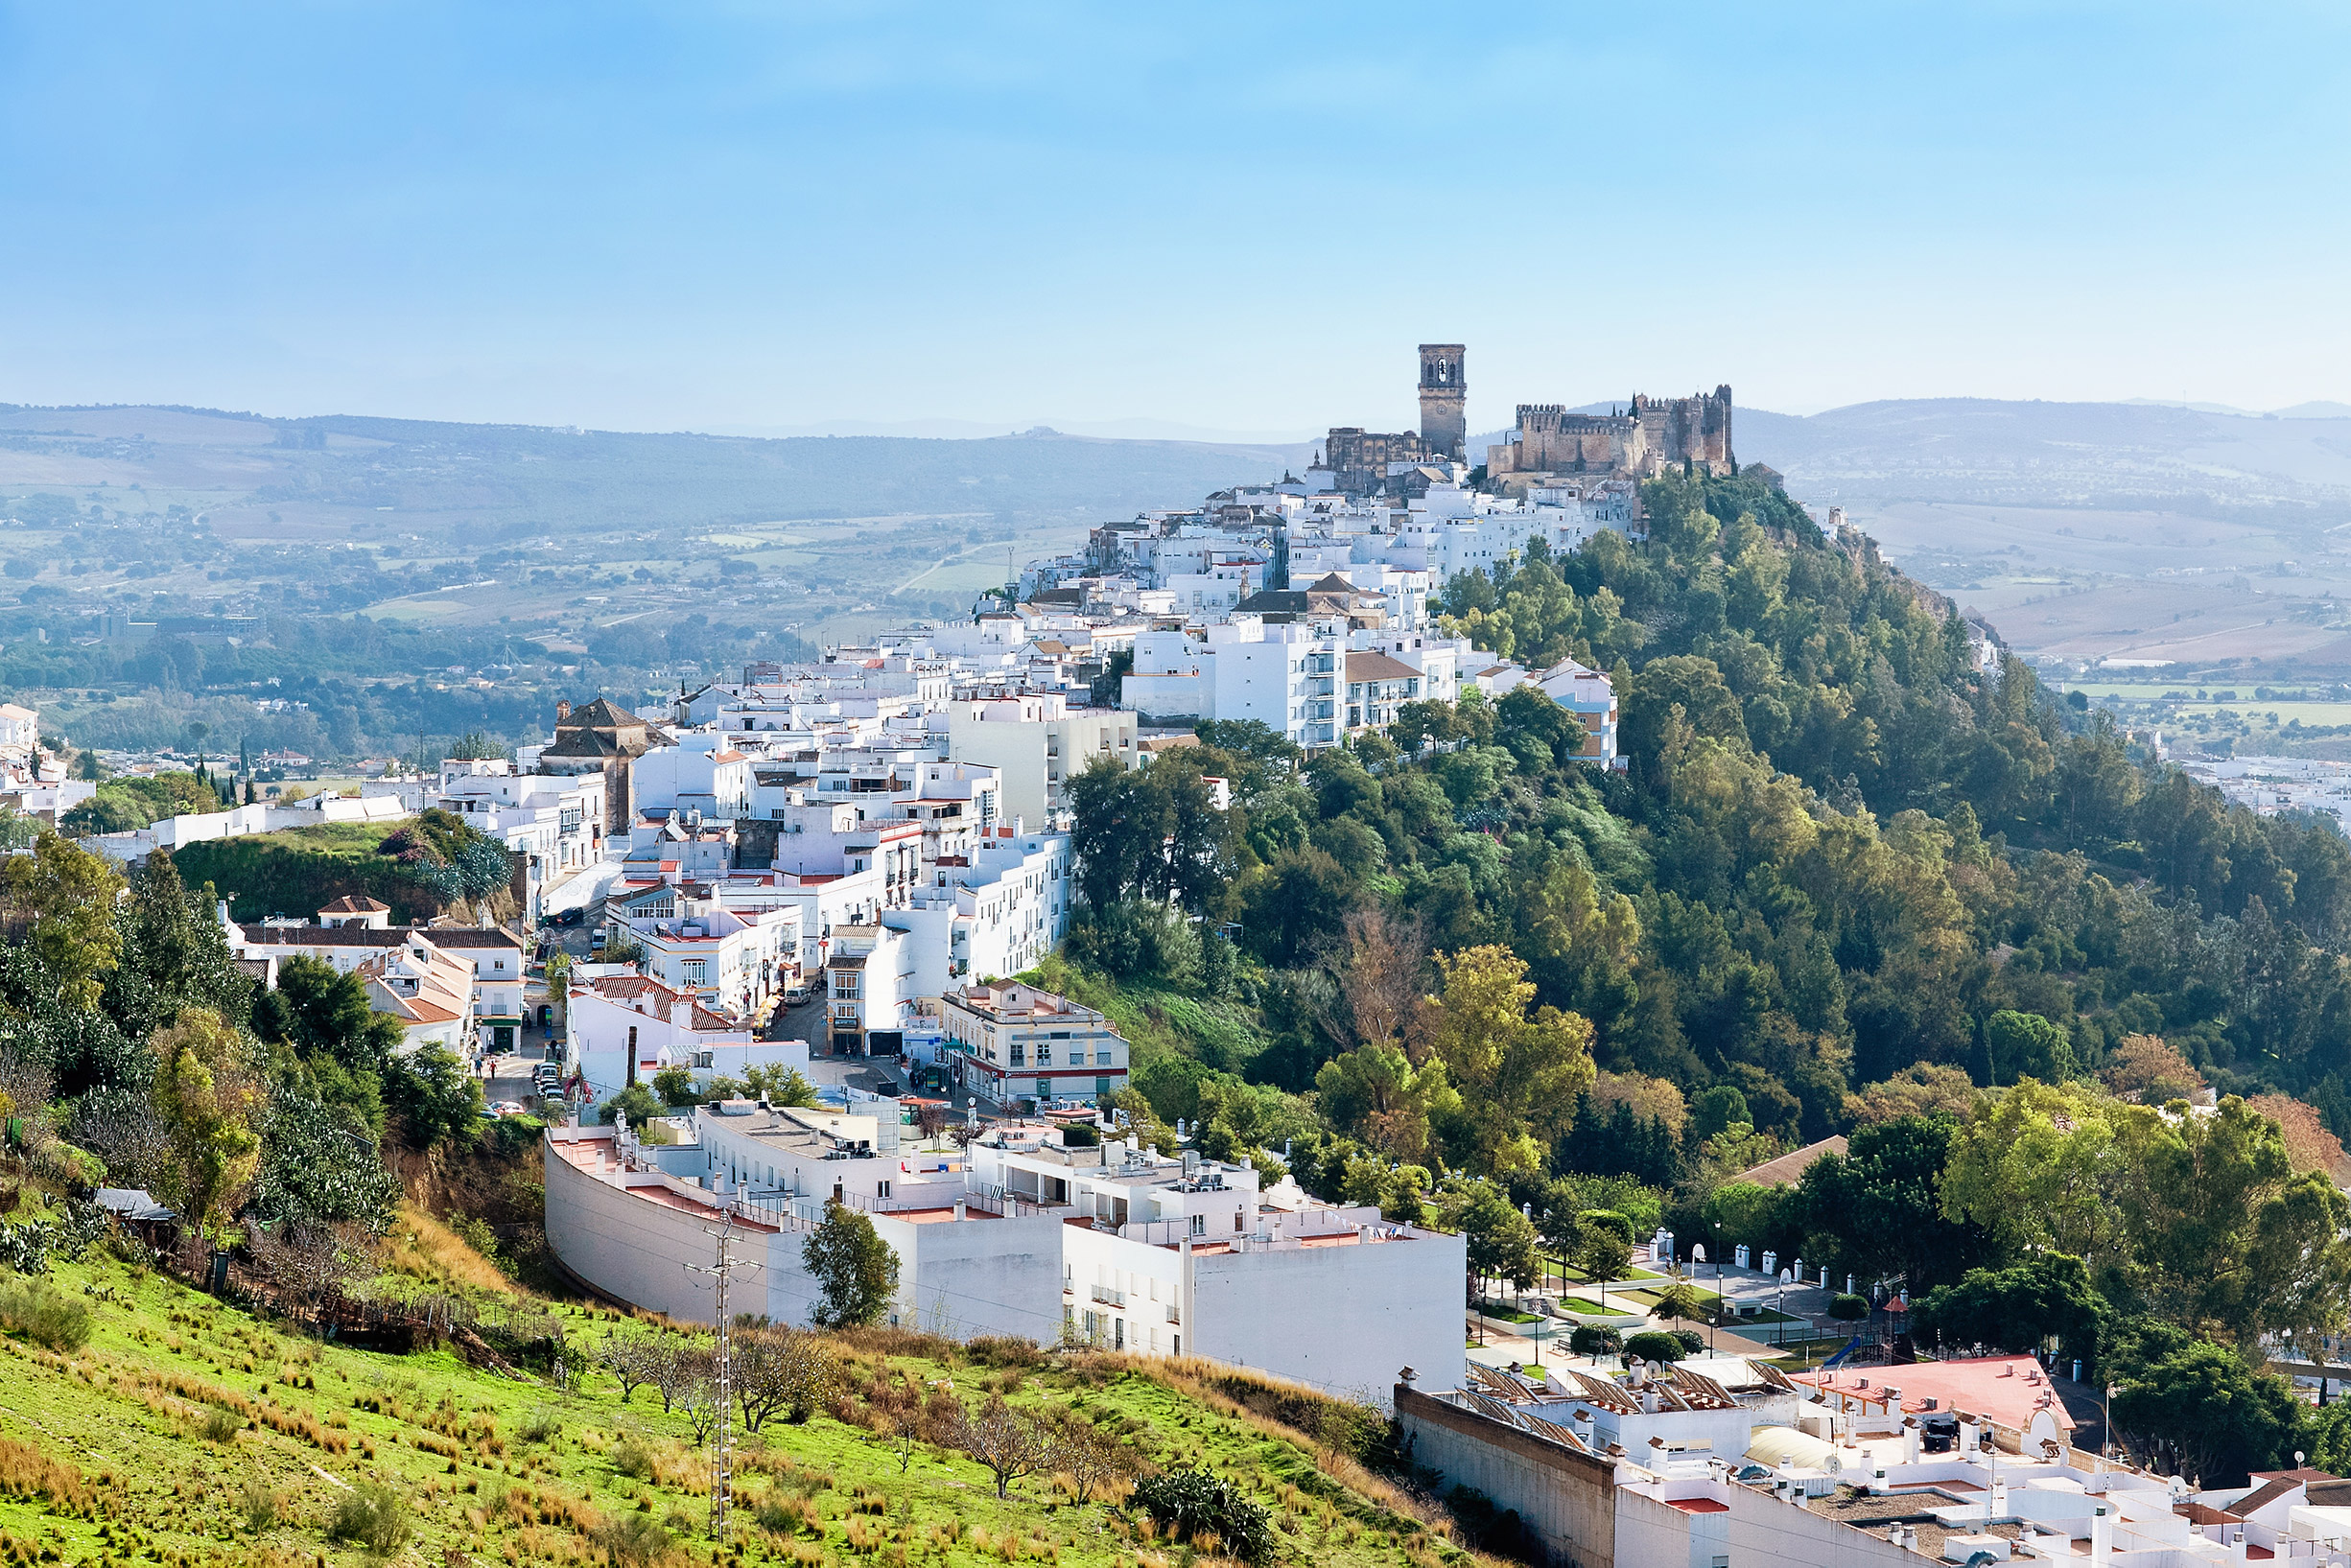 What's there to see and do in Arcos de la Frontera, southern Spain